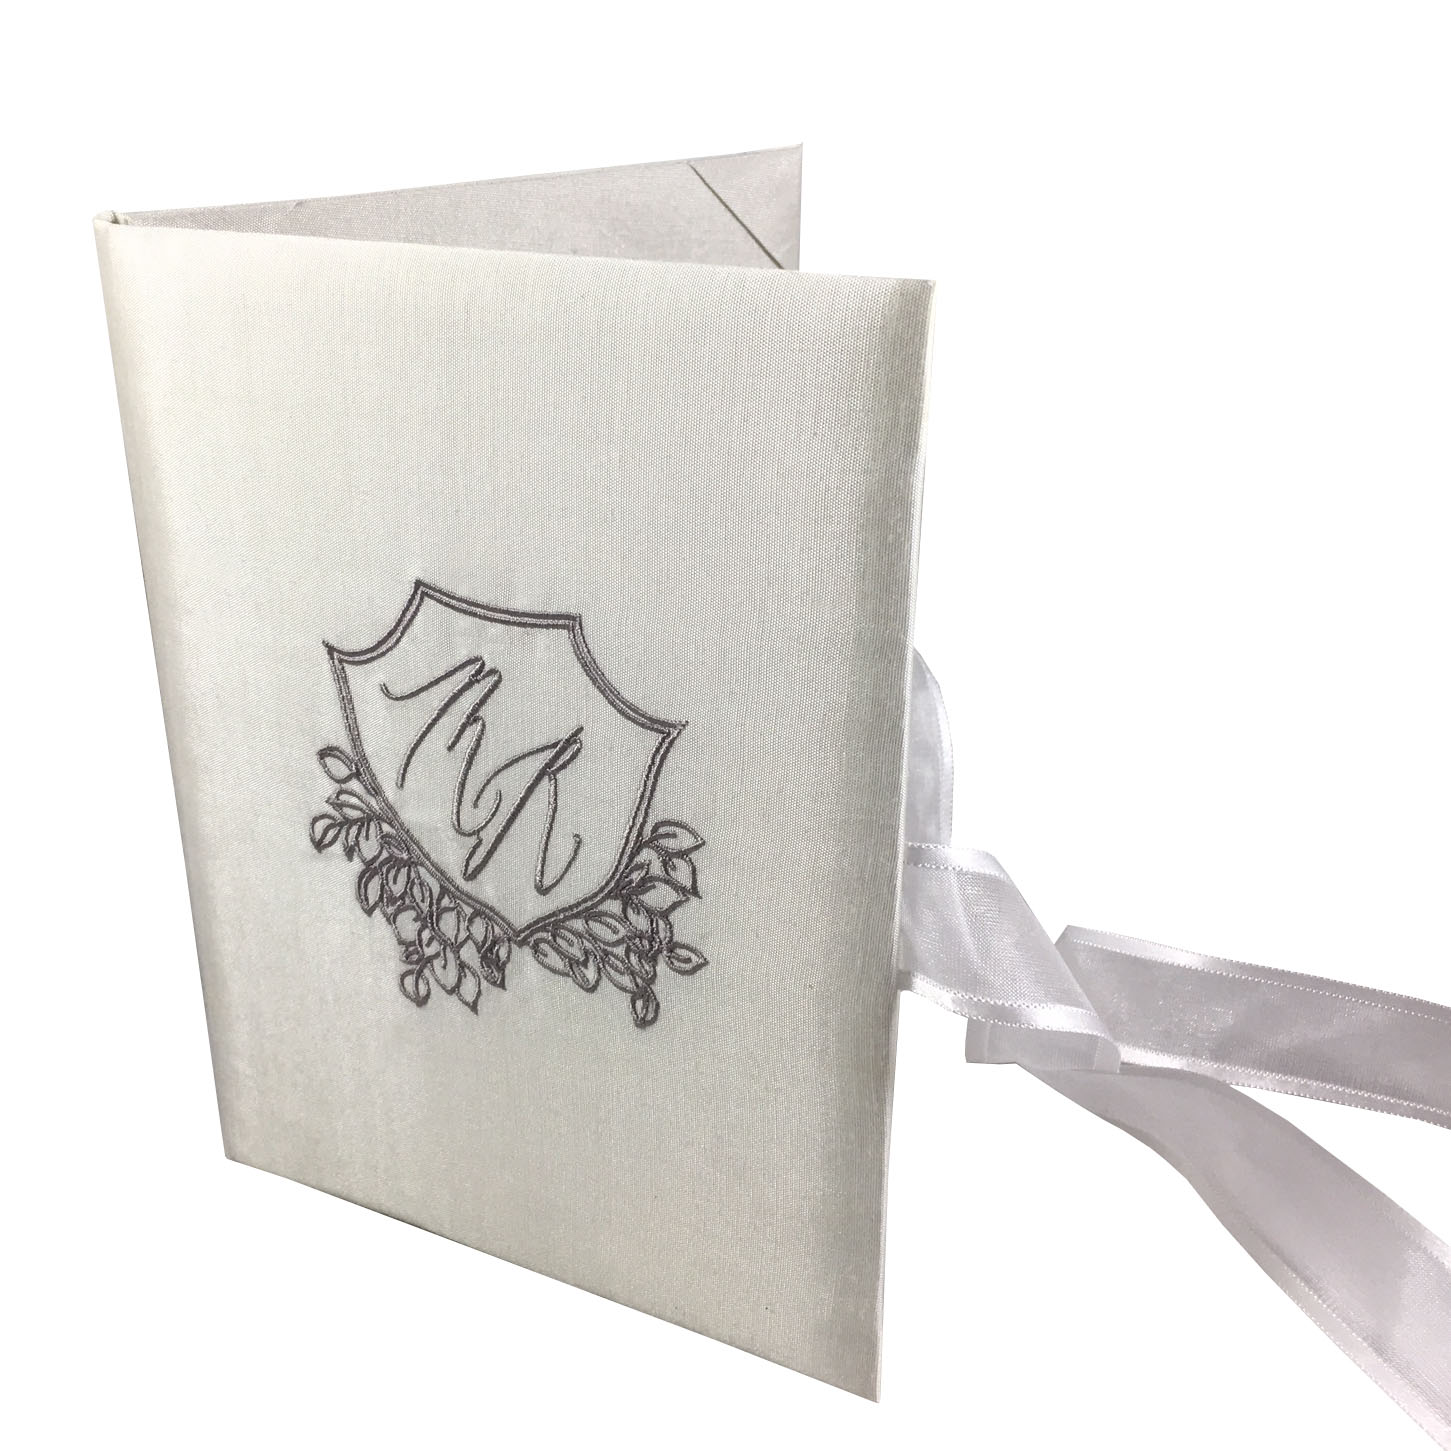 monogram silk invitation design for luxury wedding invitations